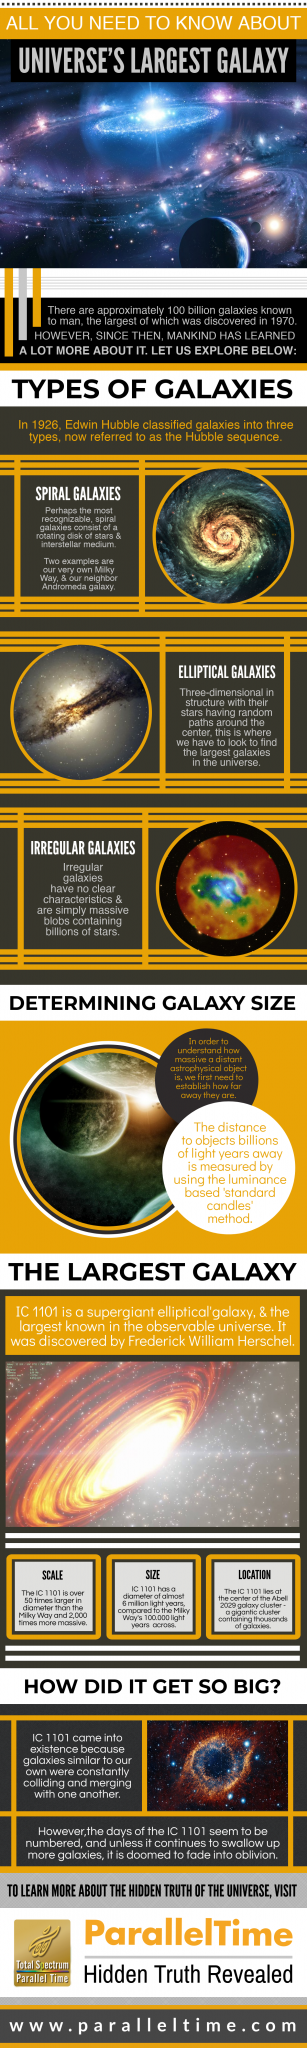 All You Need to Know About Universe's Largest Galaxy